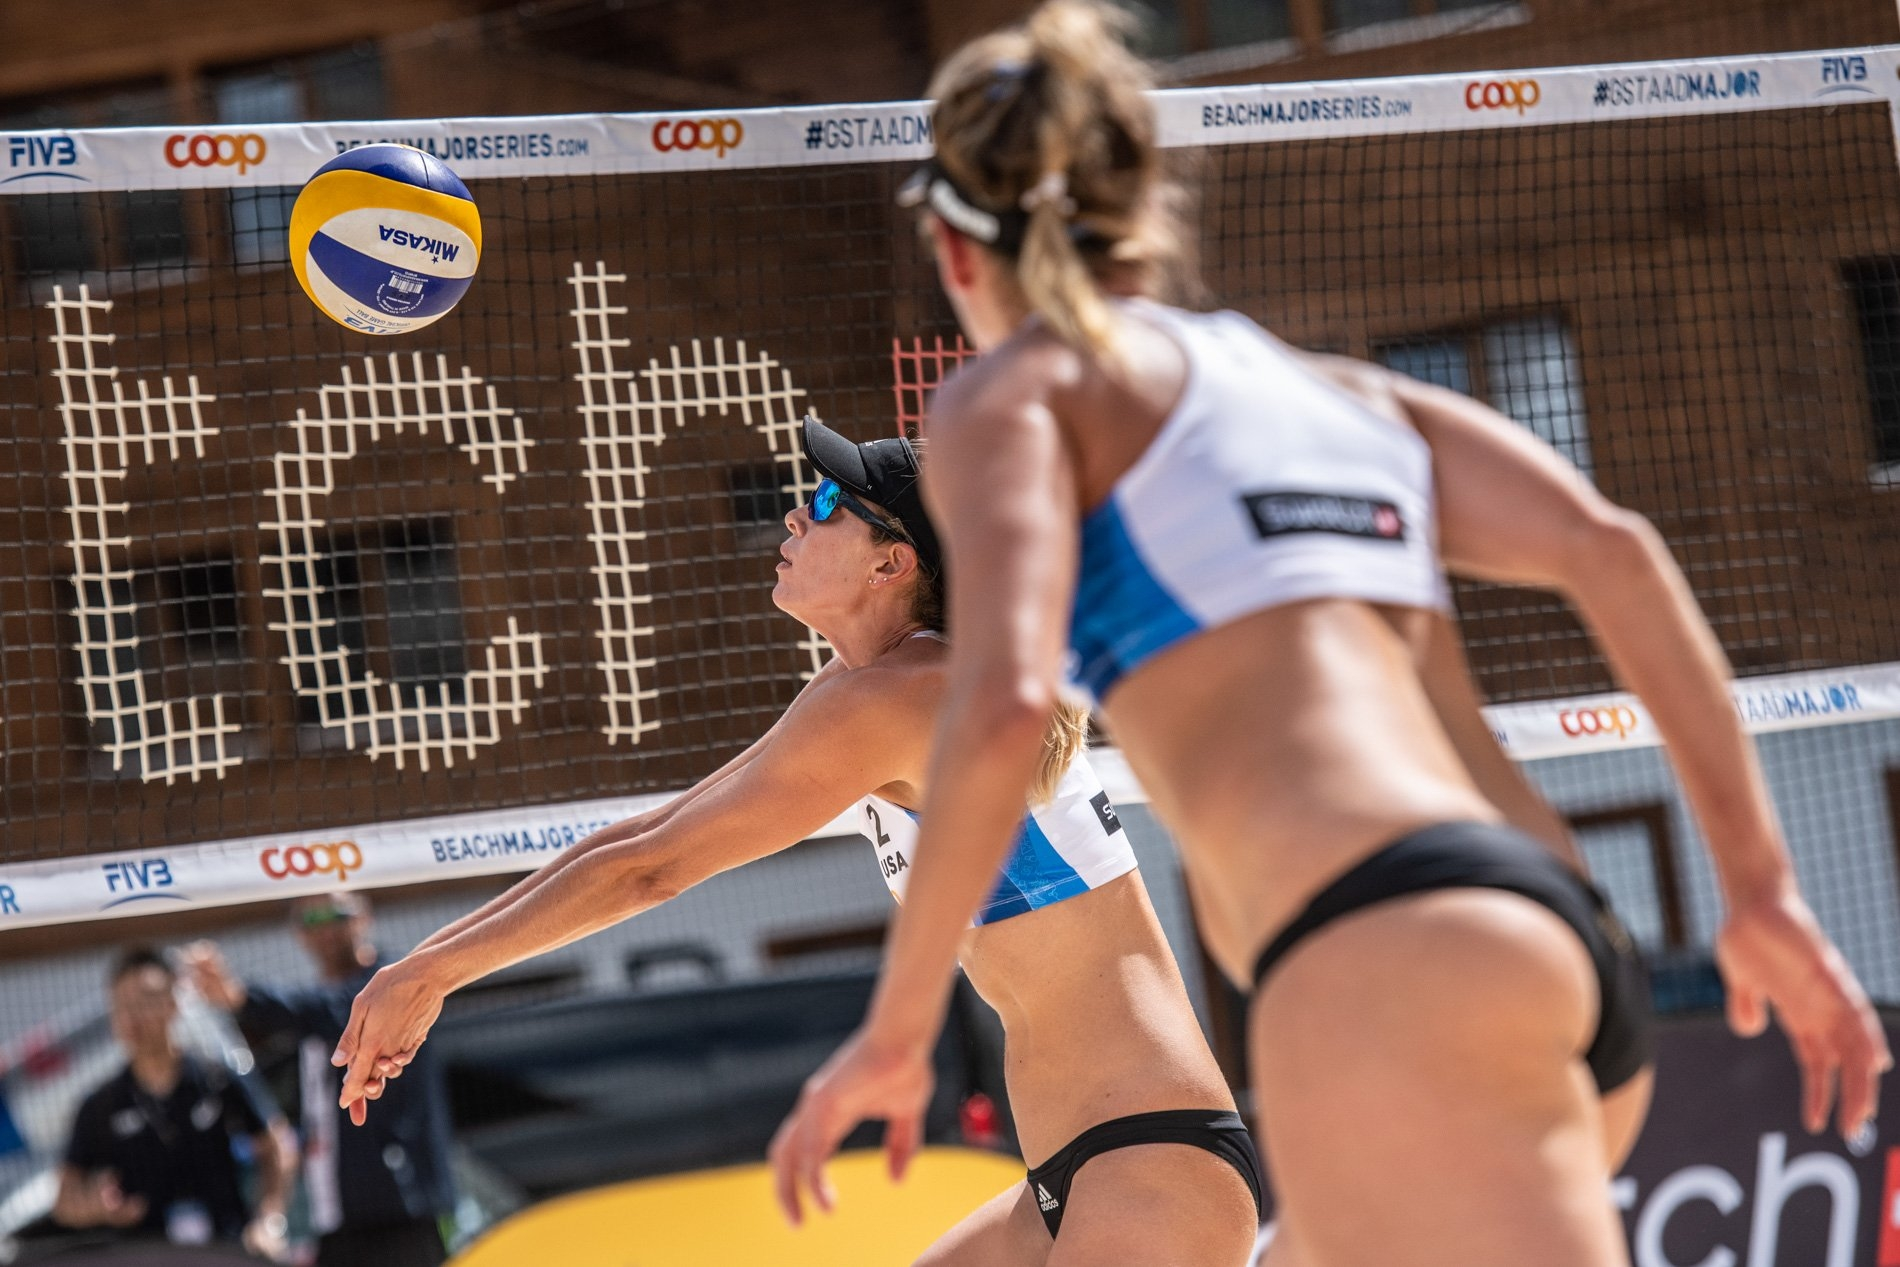 The Americans are looking forward to a  good result in a Beach Major Series event